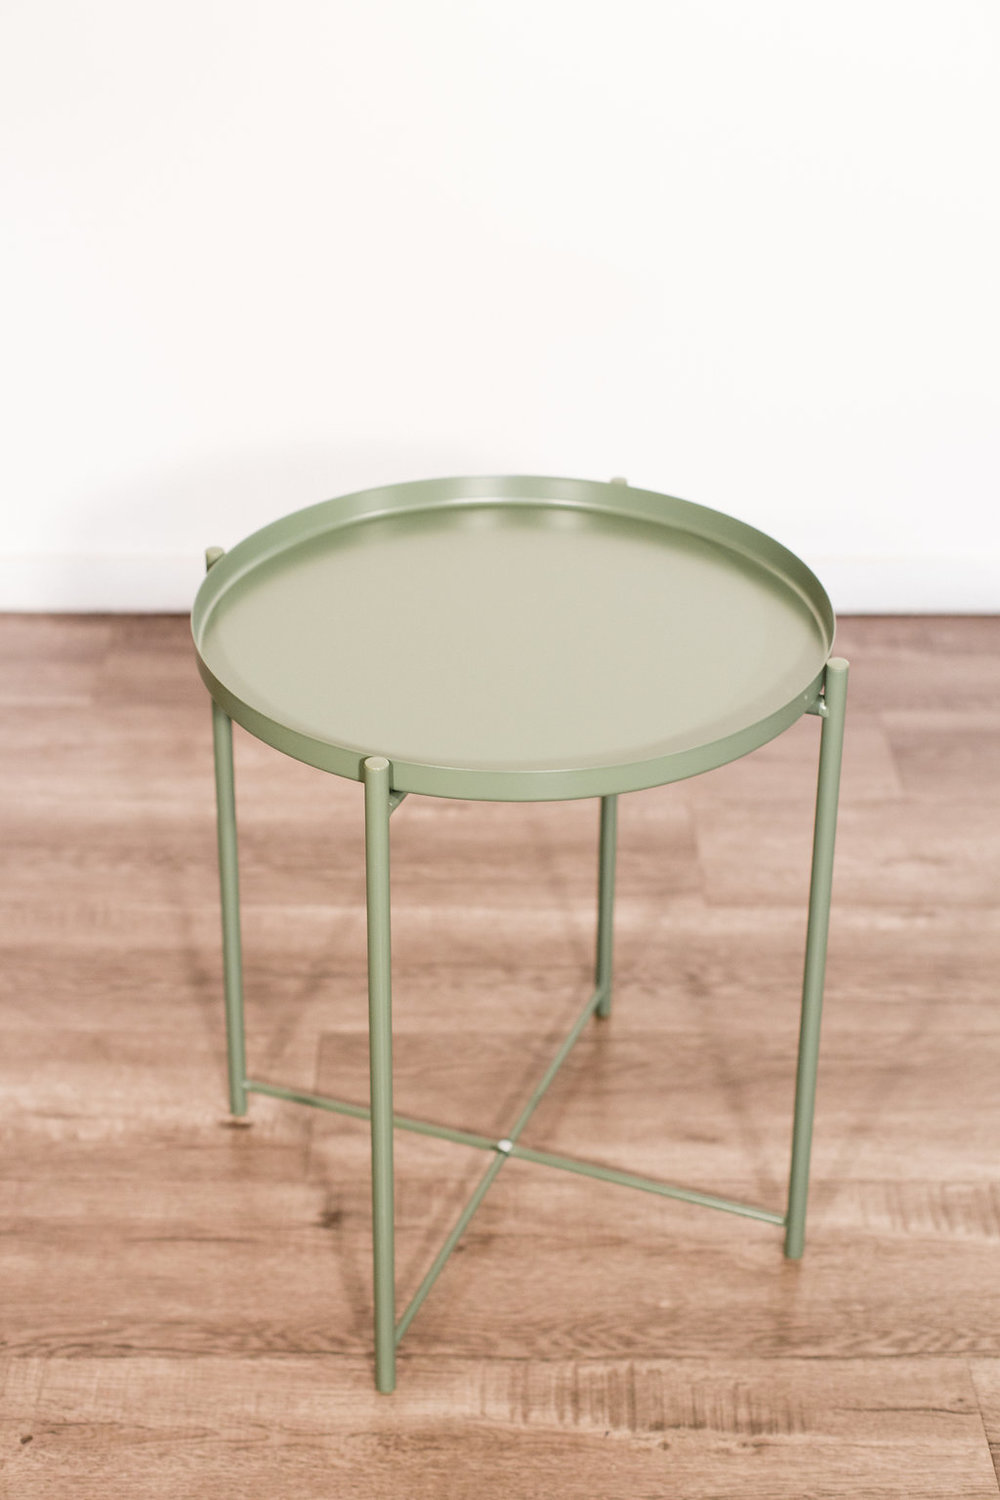 "Green Table 18"" diameter 21"" tall Quantity: 2 Price: $20"